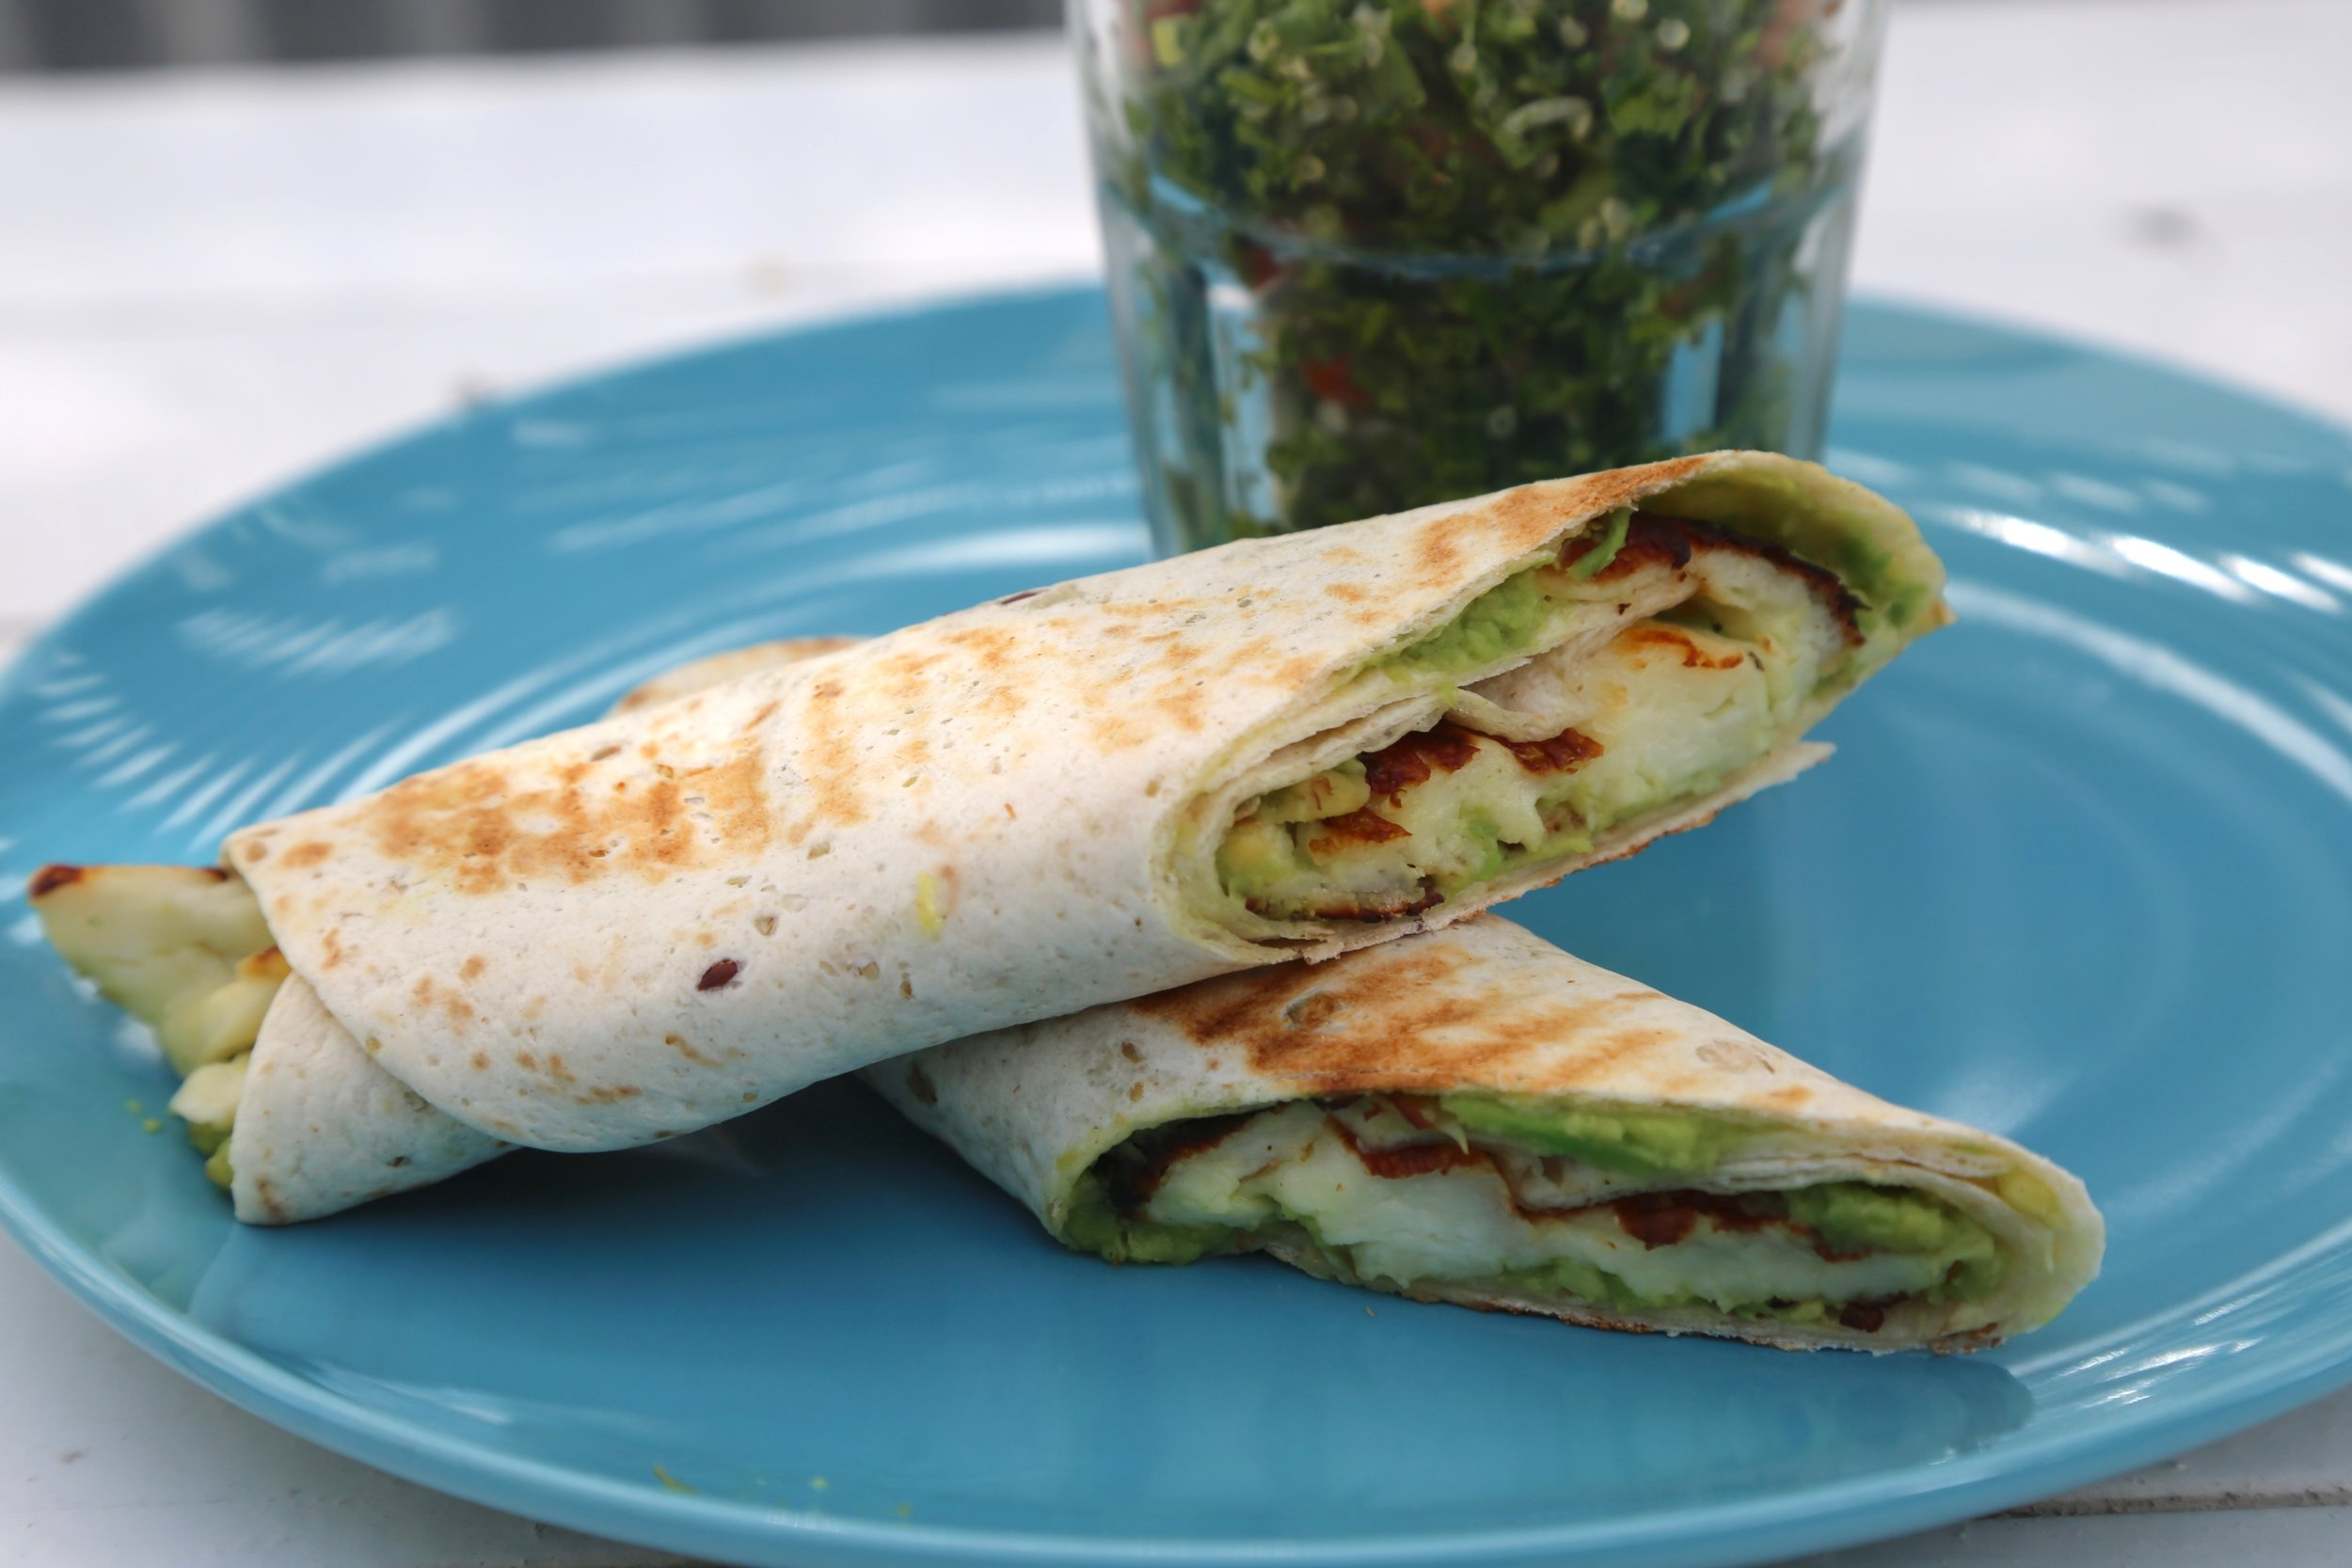 Halloumi Avocado Wrap: Grilled halloumi and mashed avocado served with tabbouleh salad